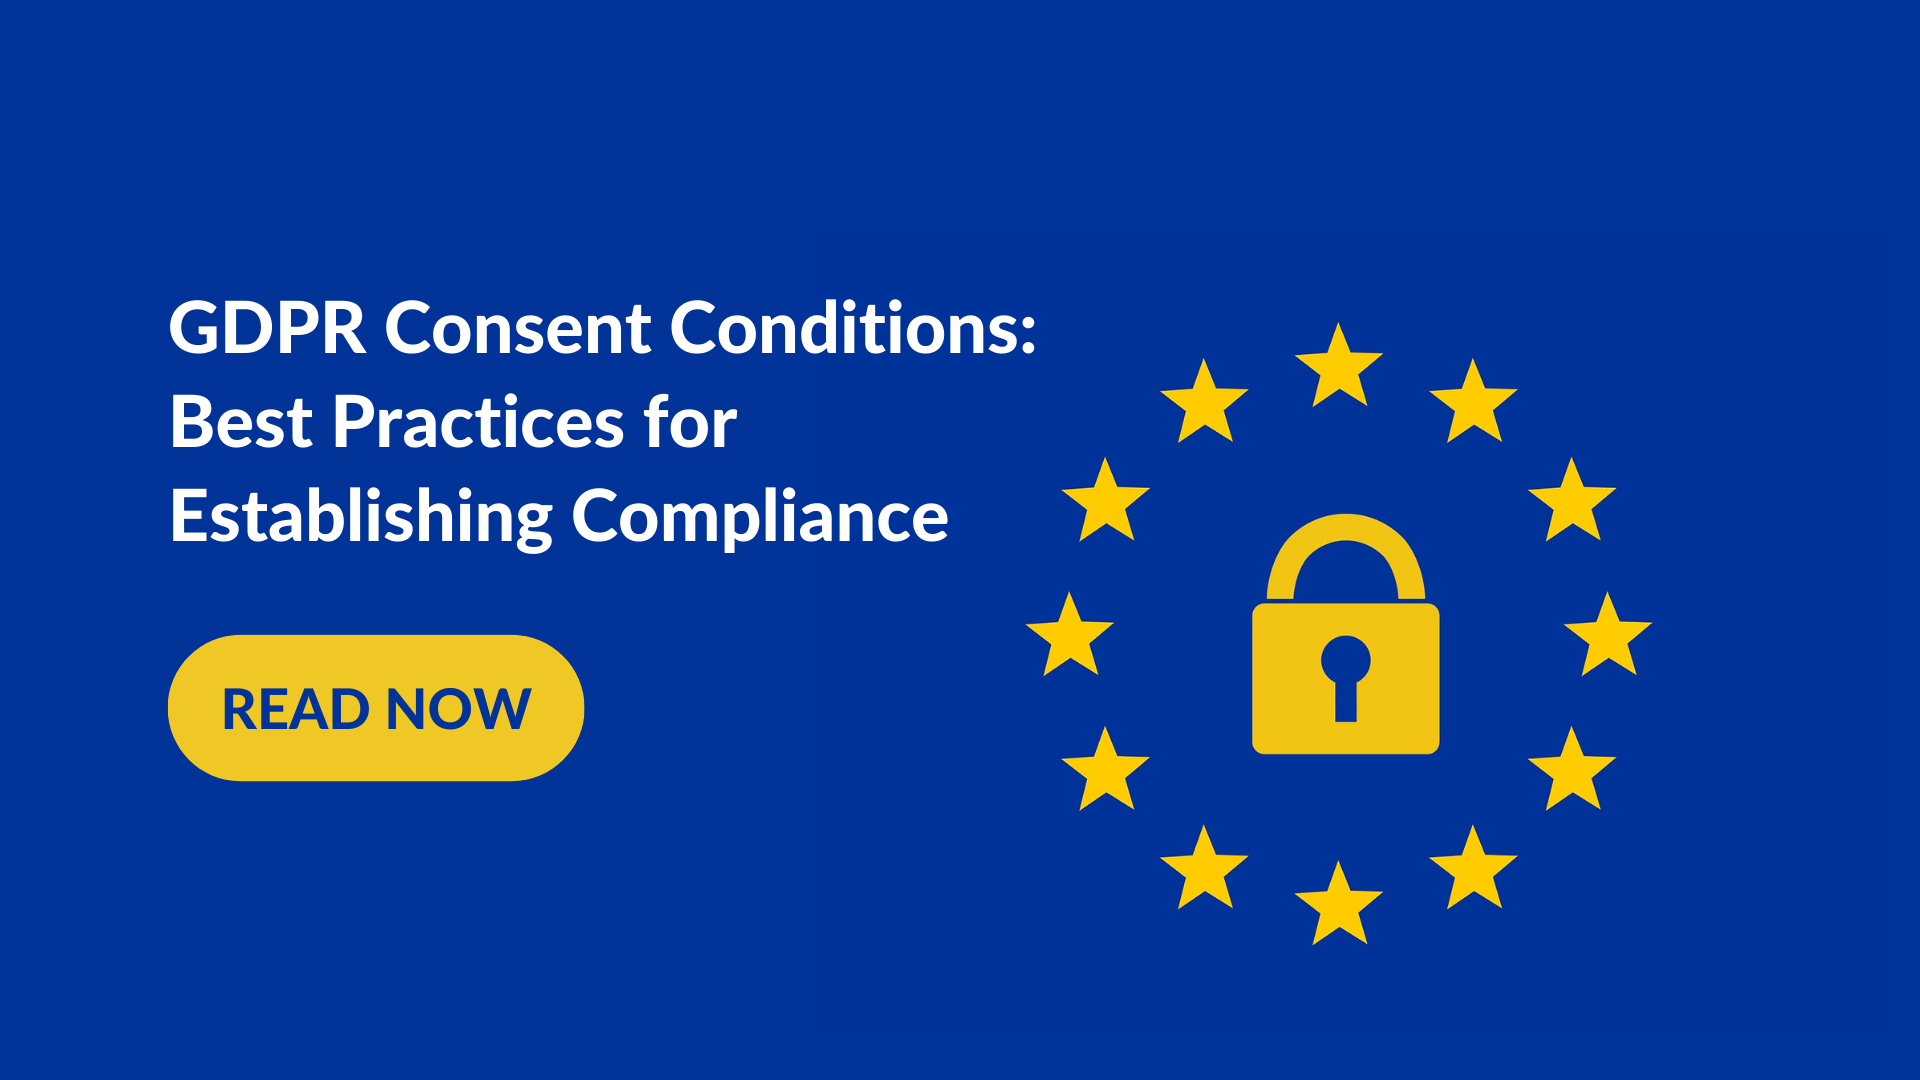 GDPR Consent Management: Best Practices for Establishing Compliance